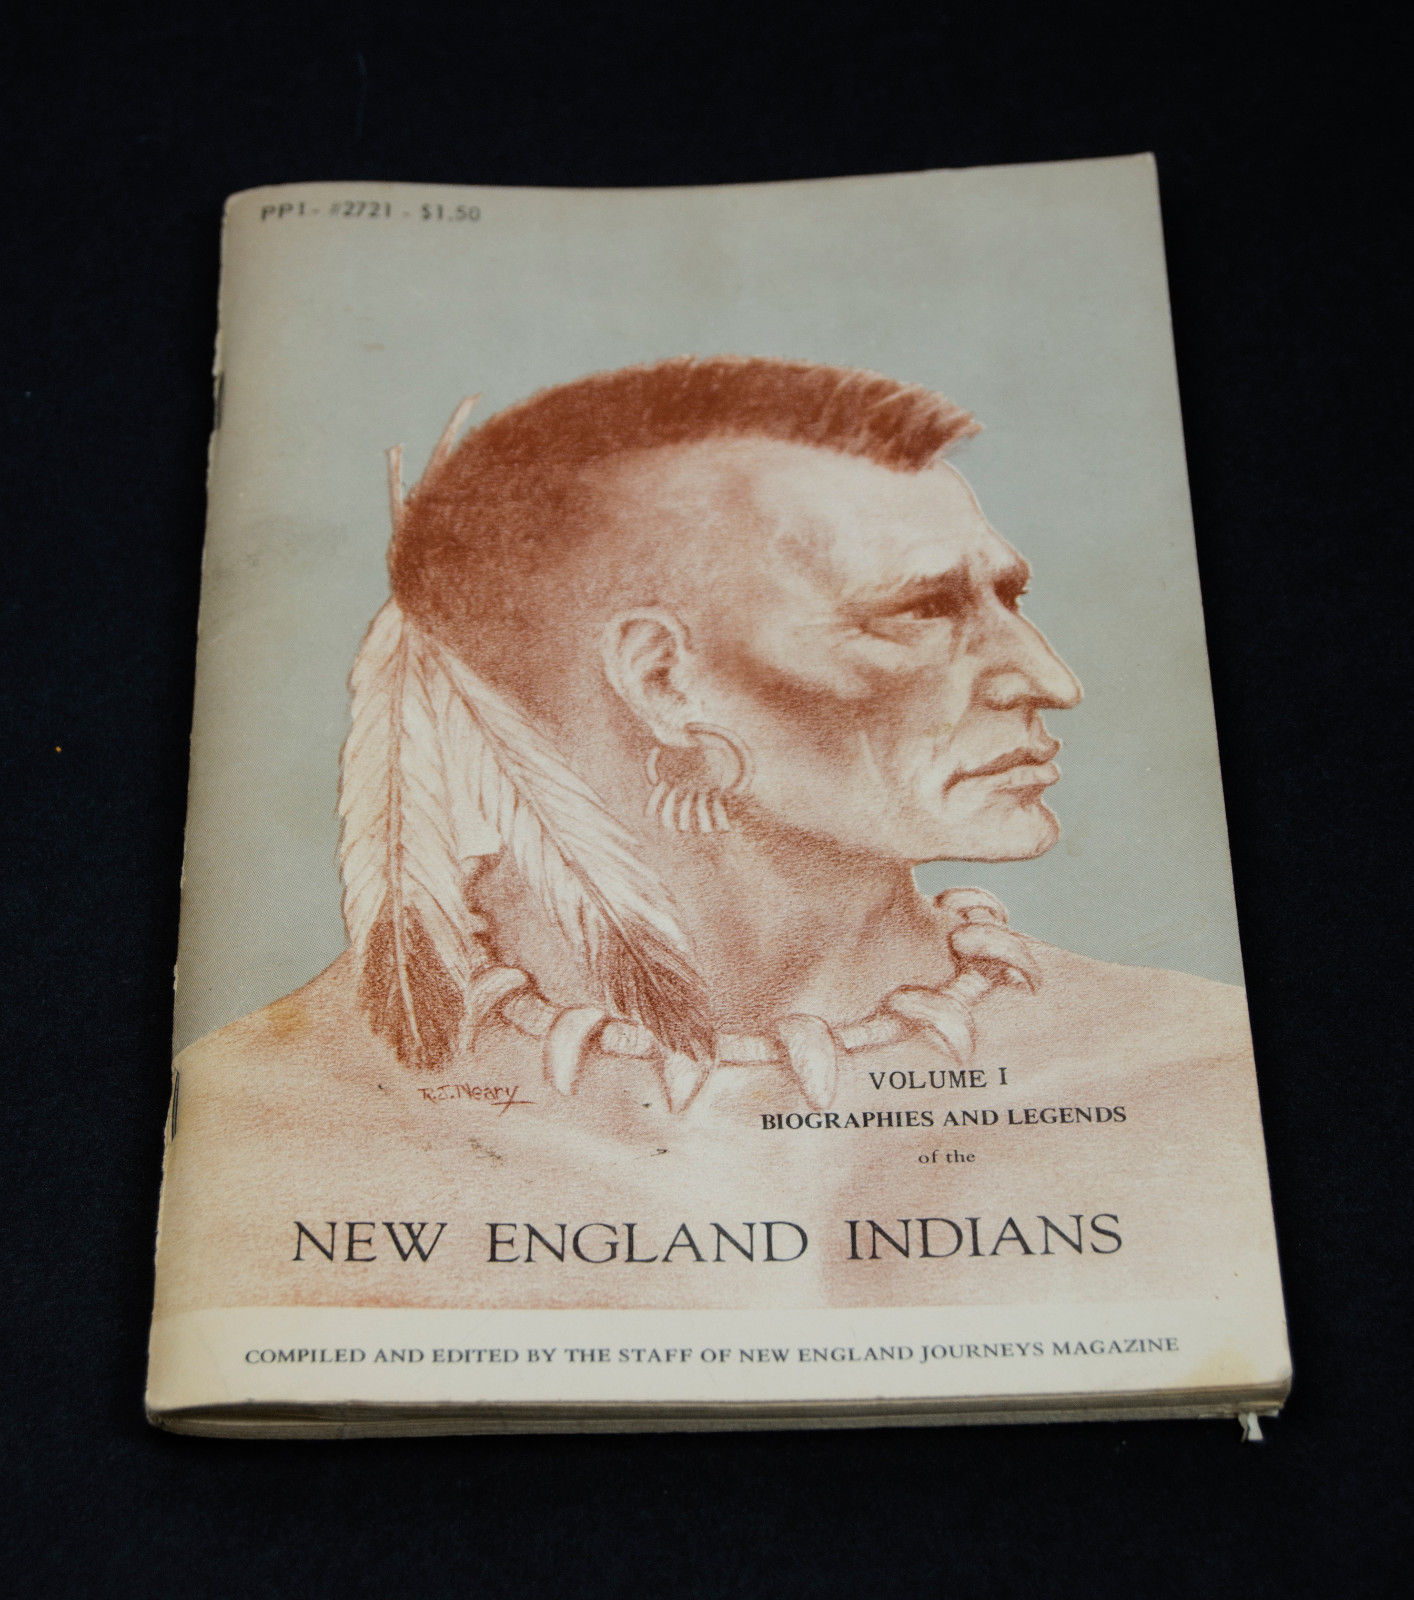 New England Indians, Biographies and Legends, Leo Bofanti, Vol 1, 1969 paperback